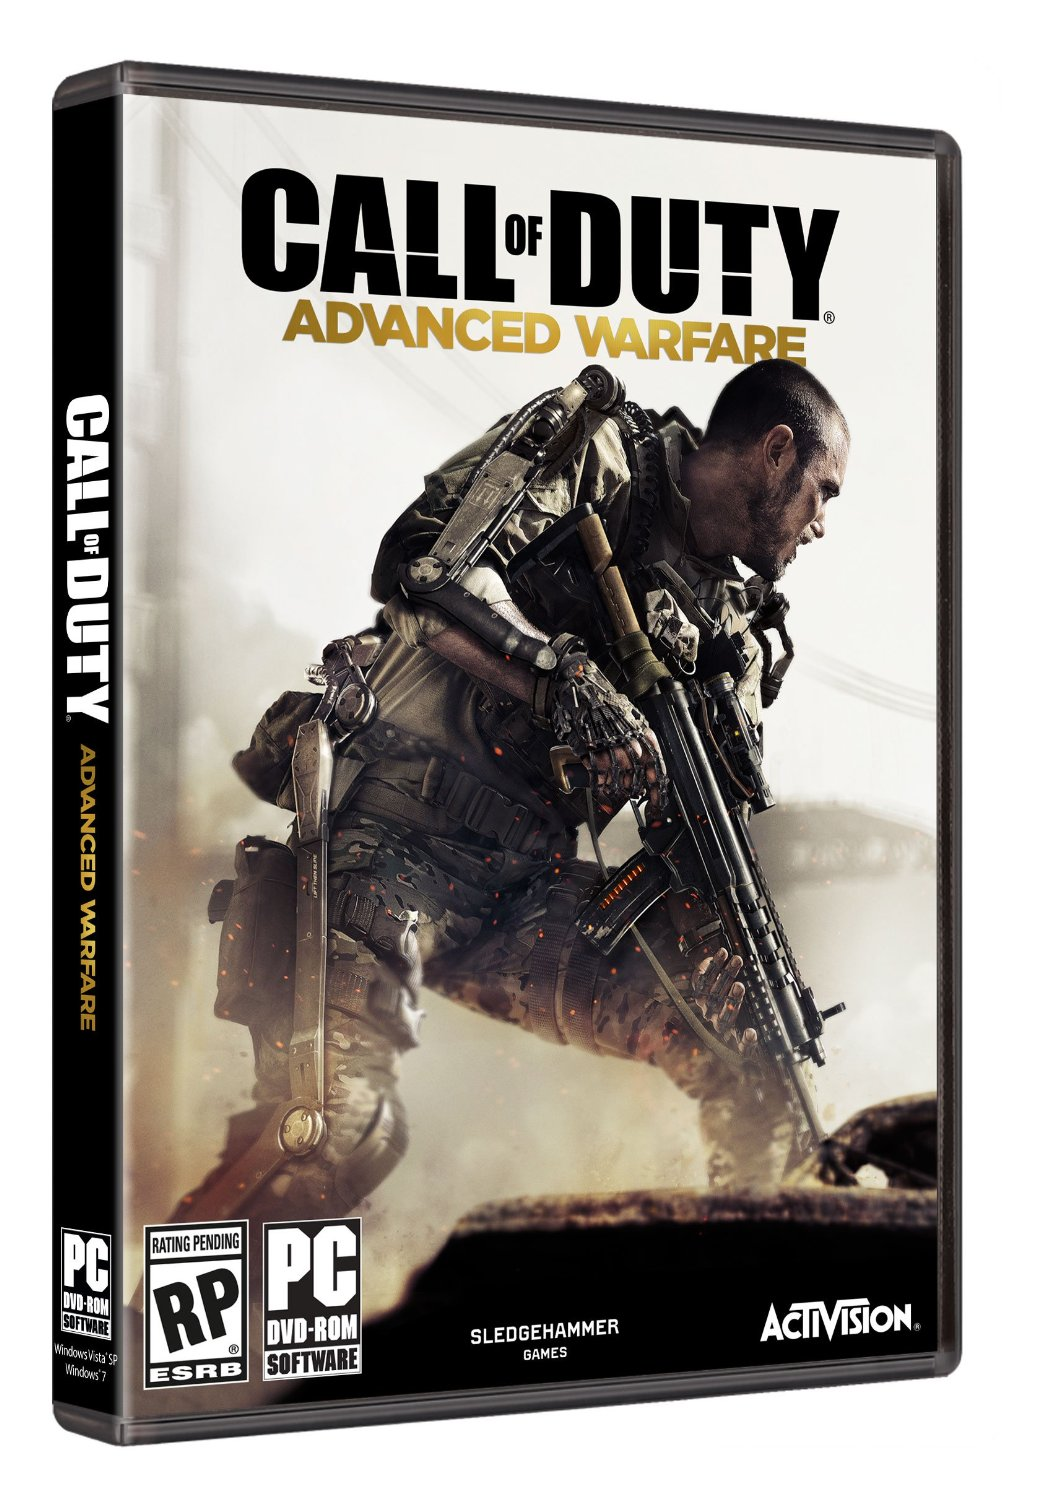 Call of Duty: Advanced Warfare Box Art Revealed - Legit ...